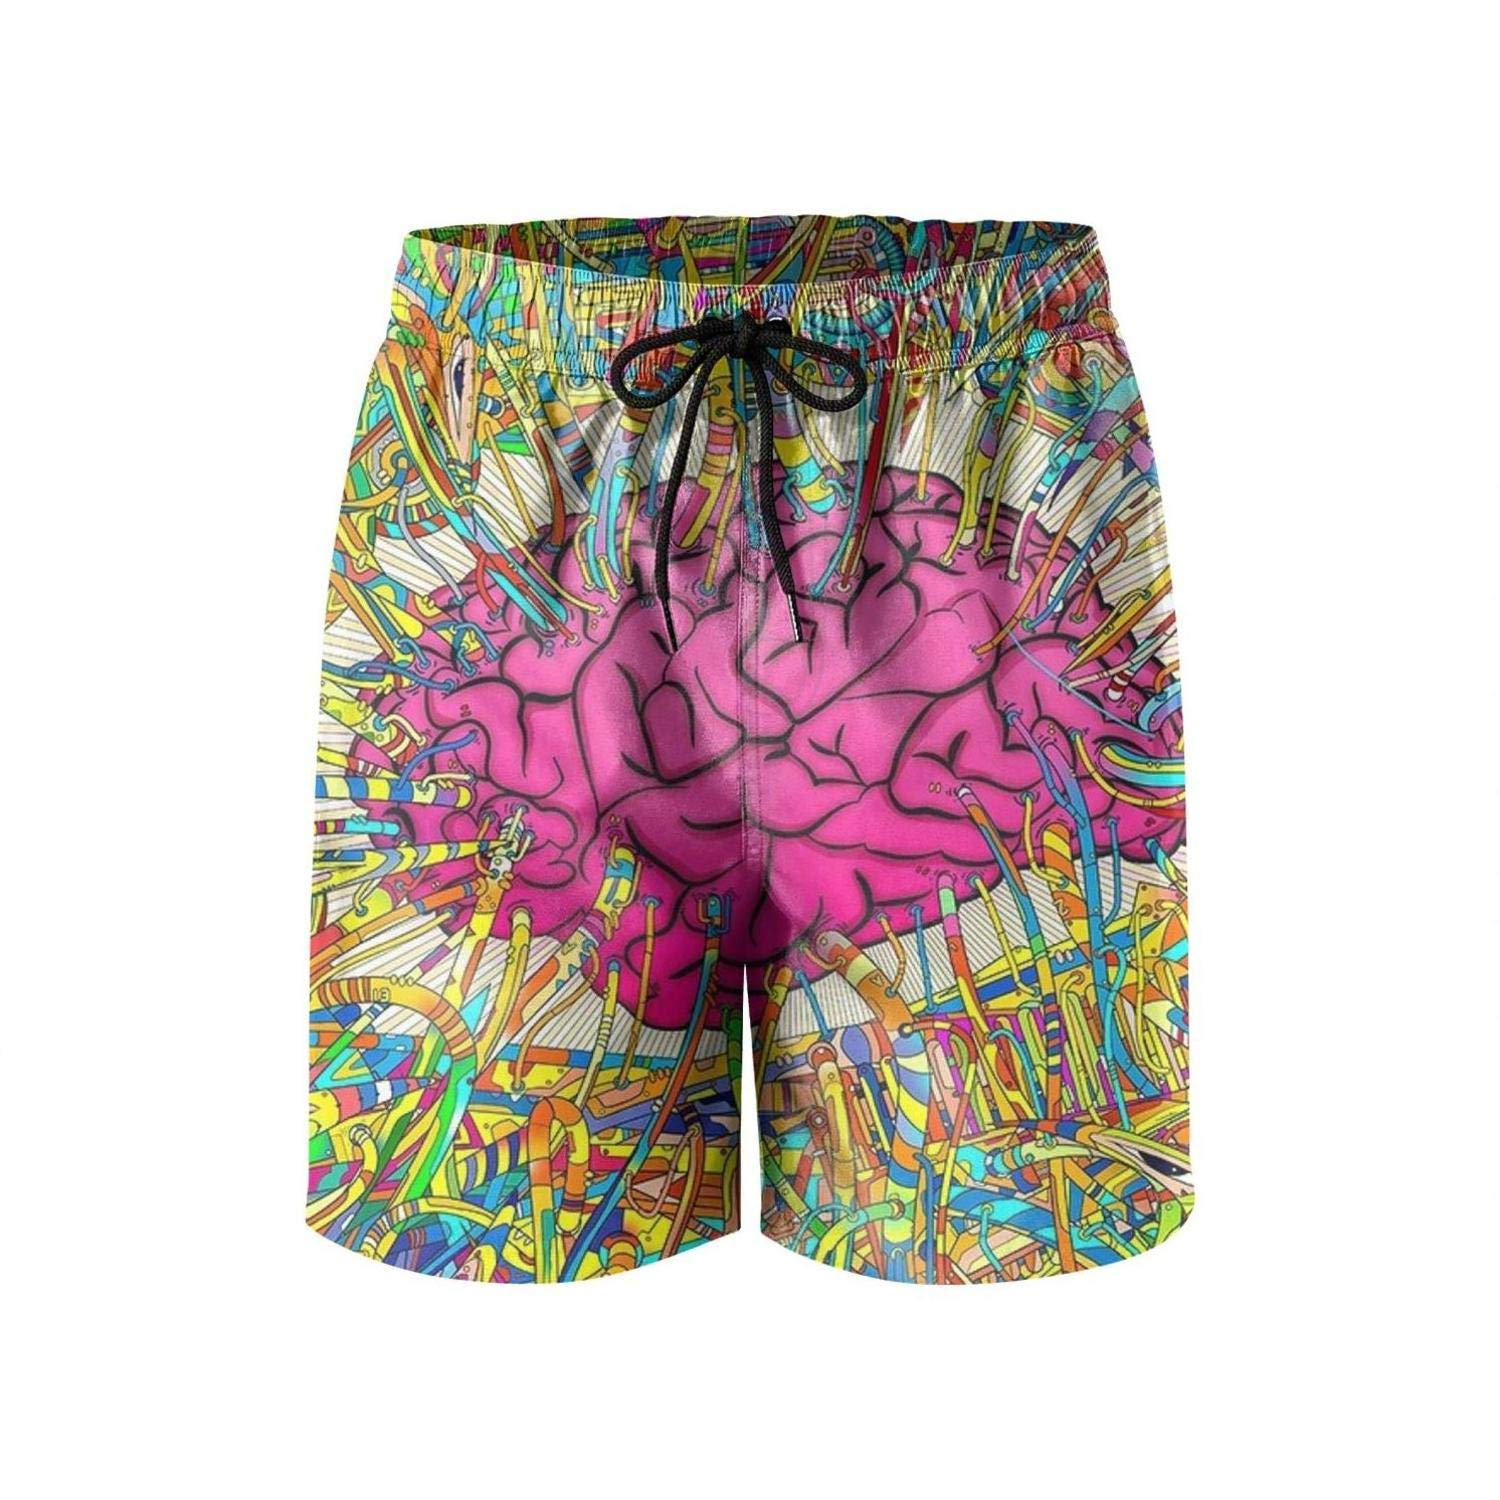 Colorful Art Abstract Brain Wallpaper Mens Swimming Shorts Fashion Swim Trunks Solid Board Beach Shorts Swimsuits for Men